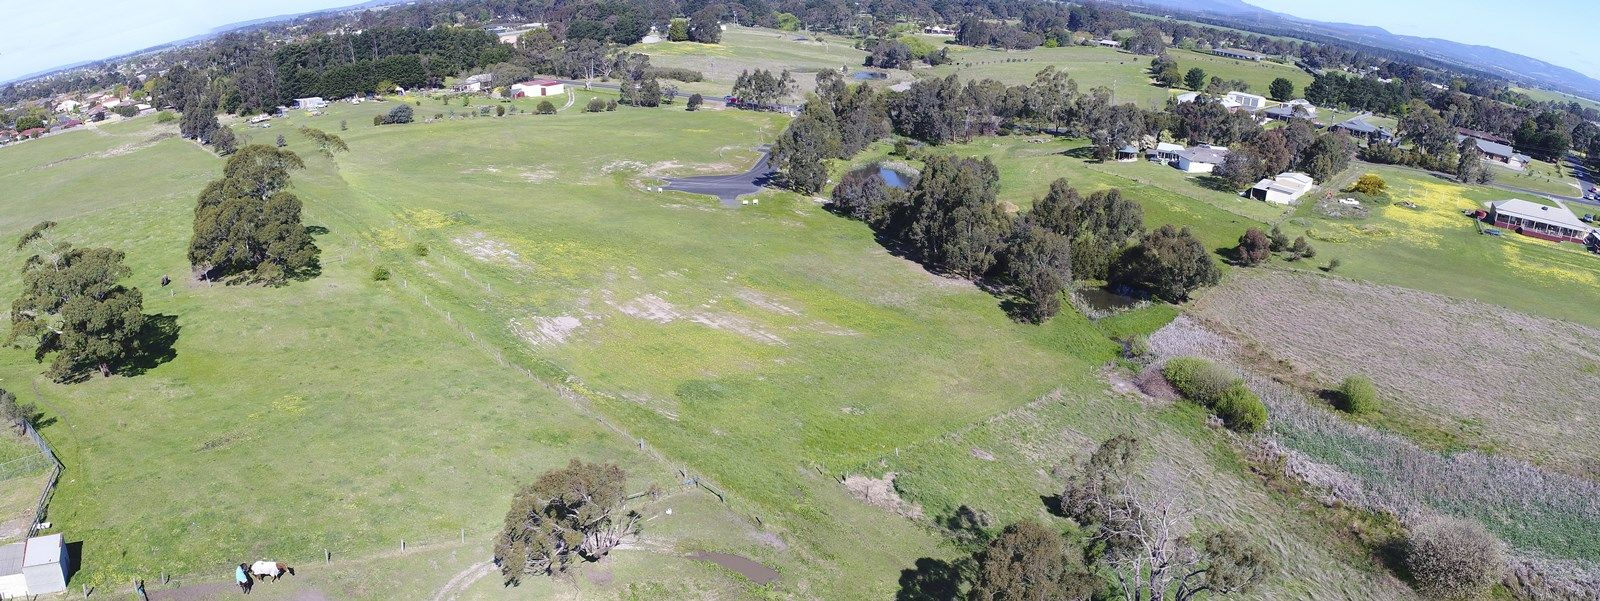 Lot 2 Margie's Place, Traralgon VIC 3844, Image 2